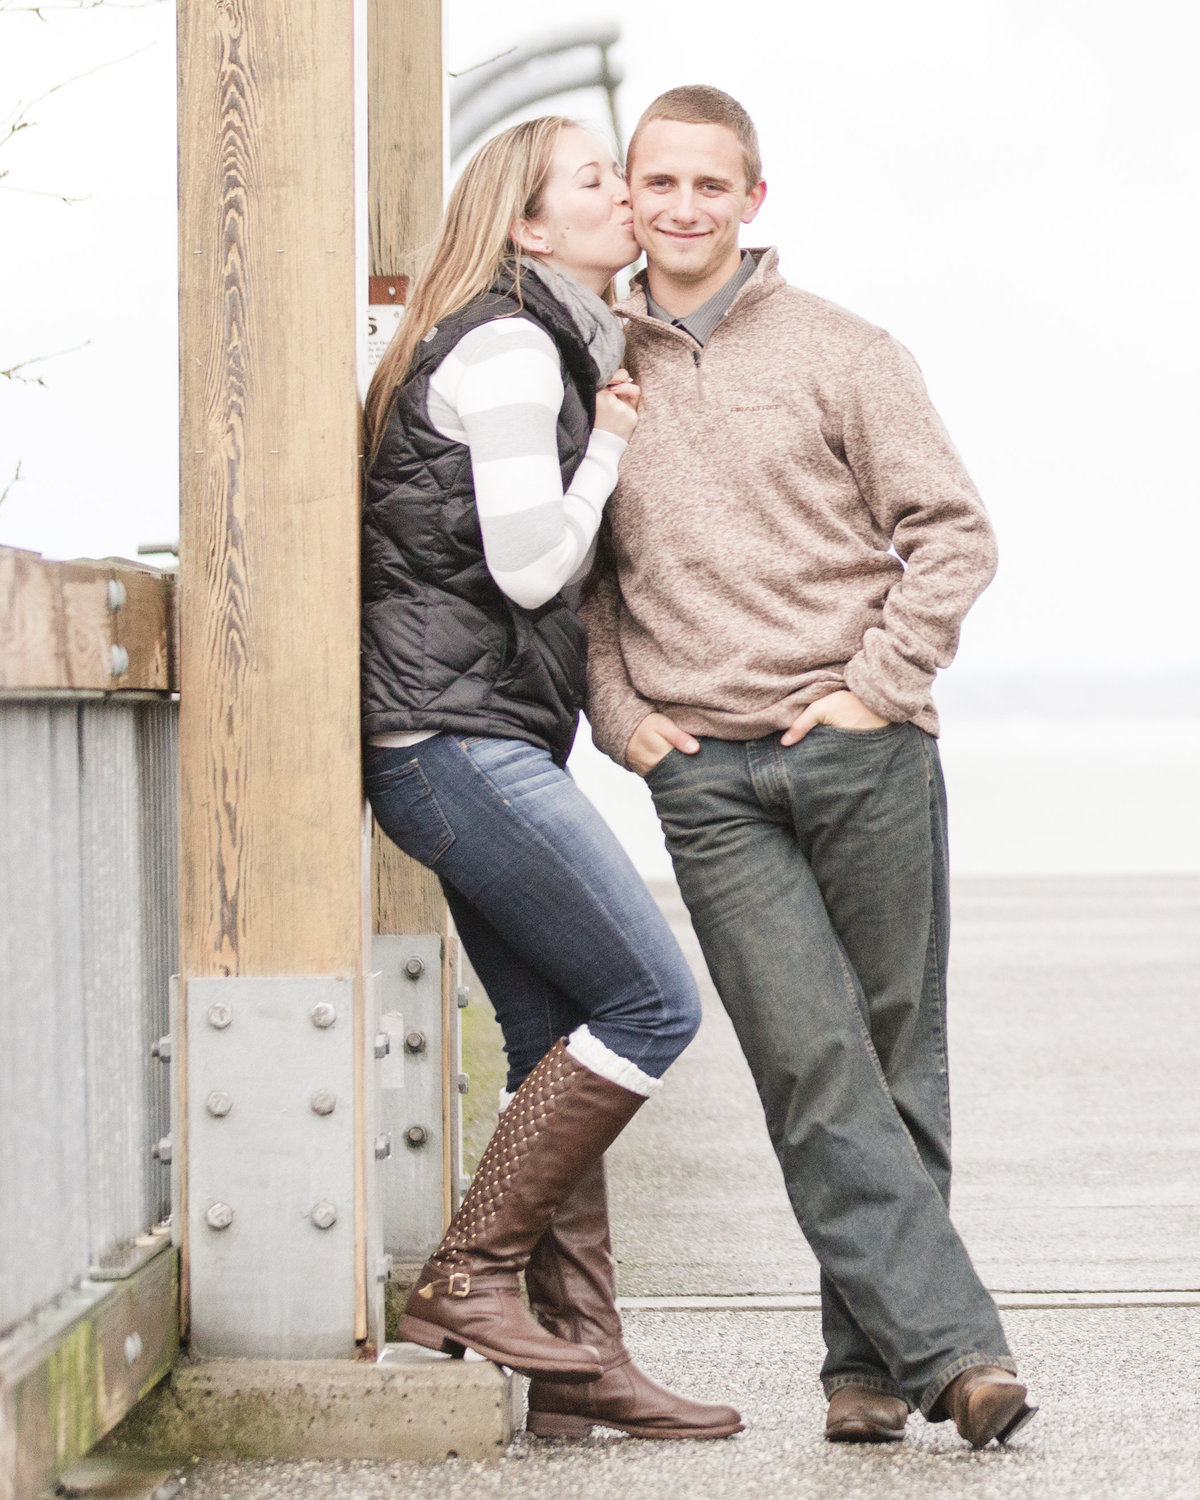 bellingham photographers boulevard park engagement photo